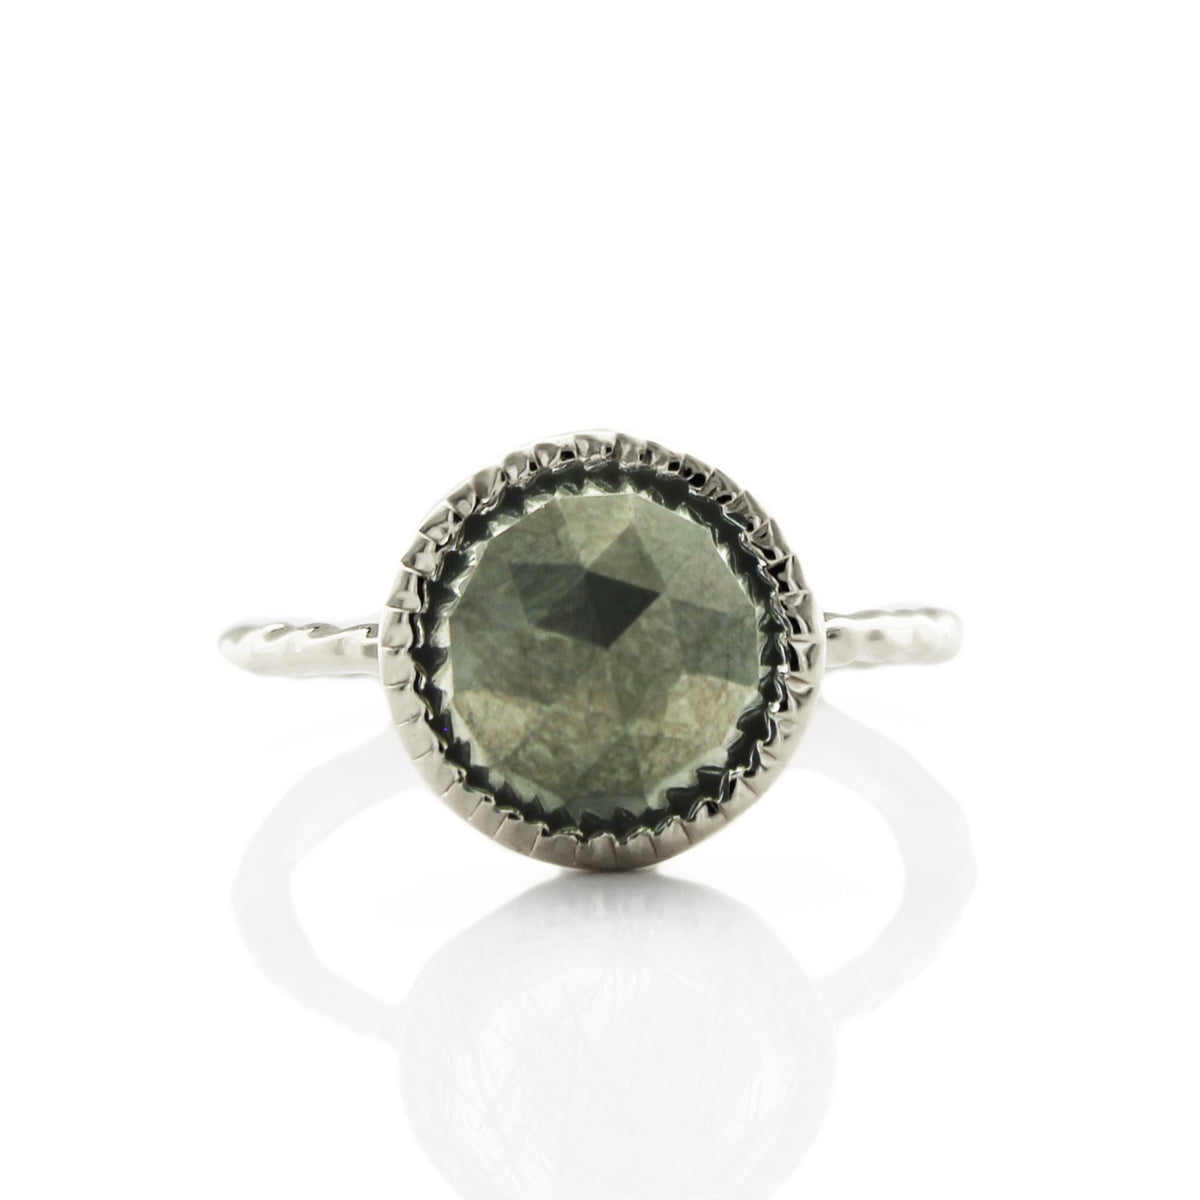 LEGACY RING - METALLIC PYRITE & SILVER - SO PRETTY CARA COTTER